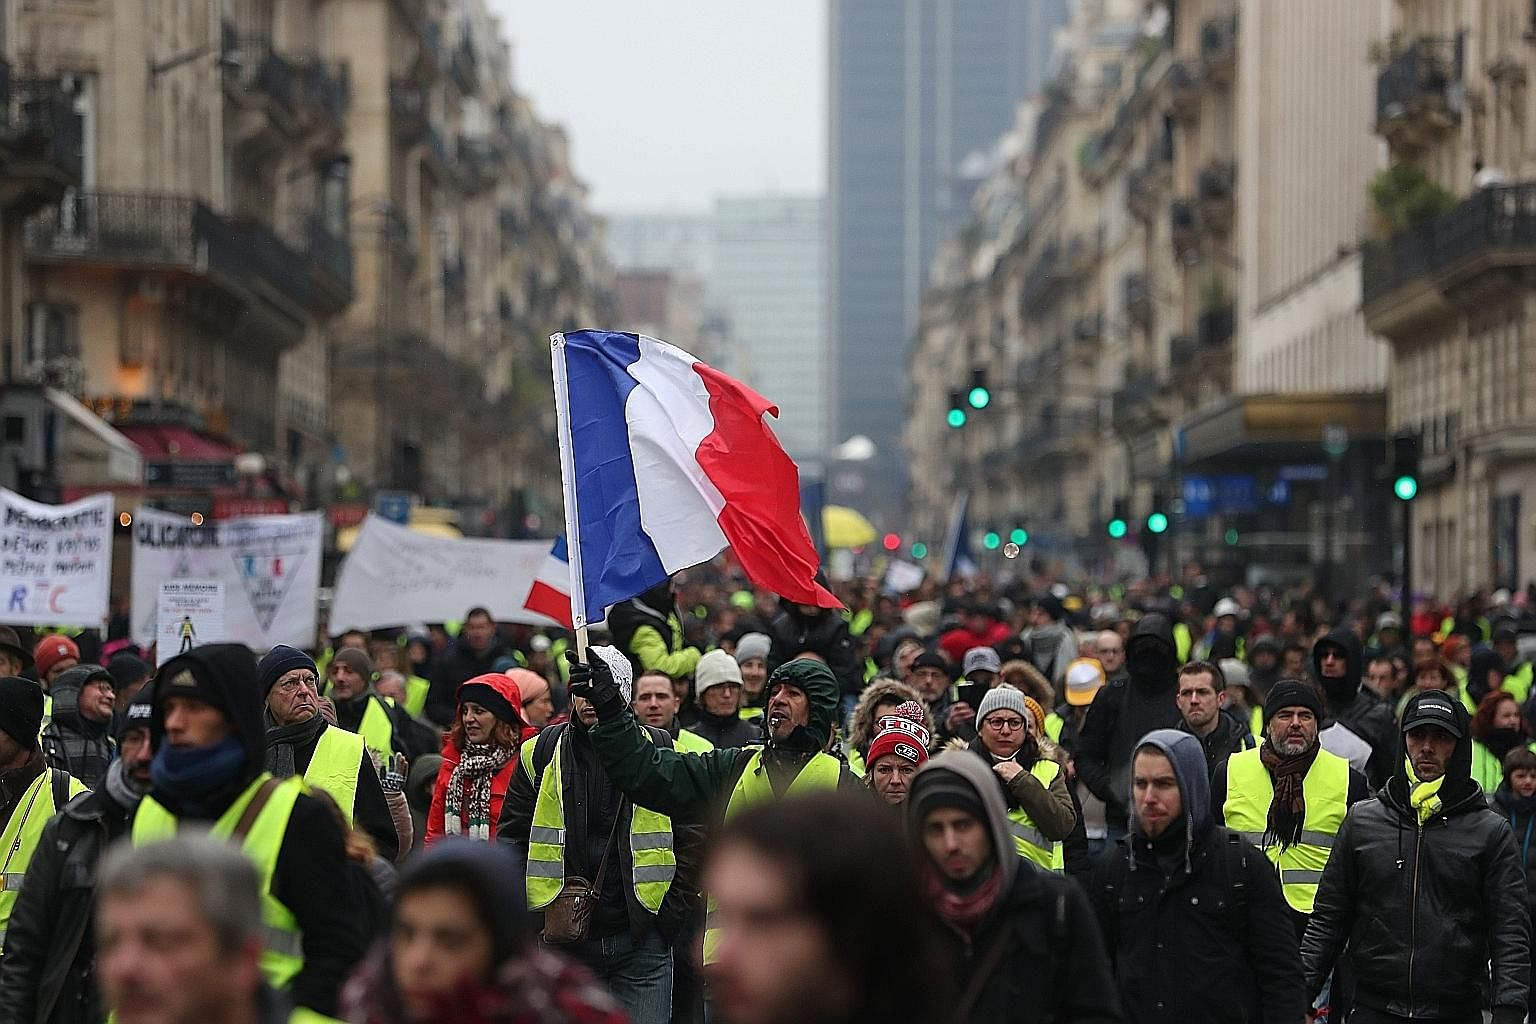 Yellow vest protesters on the streets of Paris last Saturday. The protests against French President Emmanuel Macron's proposed increases in diesel fuel taxes are a sign that the bottom 50 per cent of French society has lost trust in him, says the wri